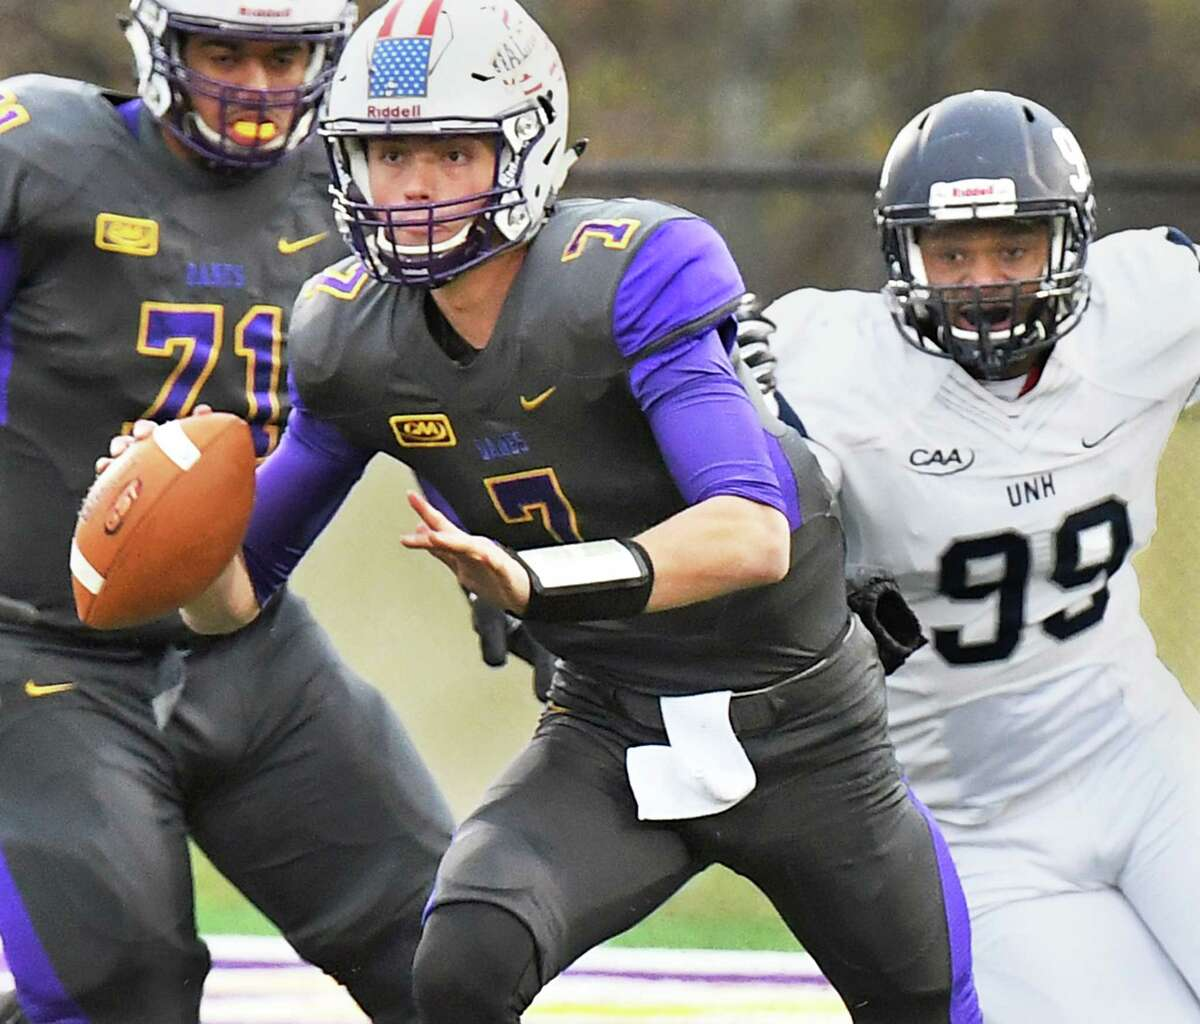 UAlbany quarterback #7 Will Brunson, center, scrambles away from New Hampshire's #99 Brian Carter during their Colonial Athletic Association game Saturday Nov. 18, 2017 in Albany, NY. (John Carl D'Annibale / Times Union)